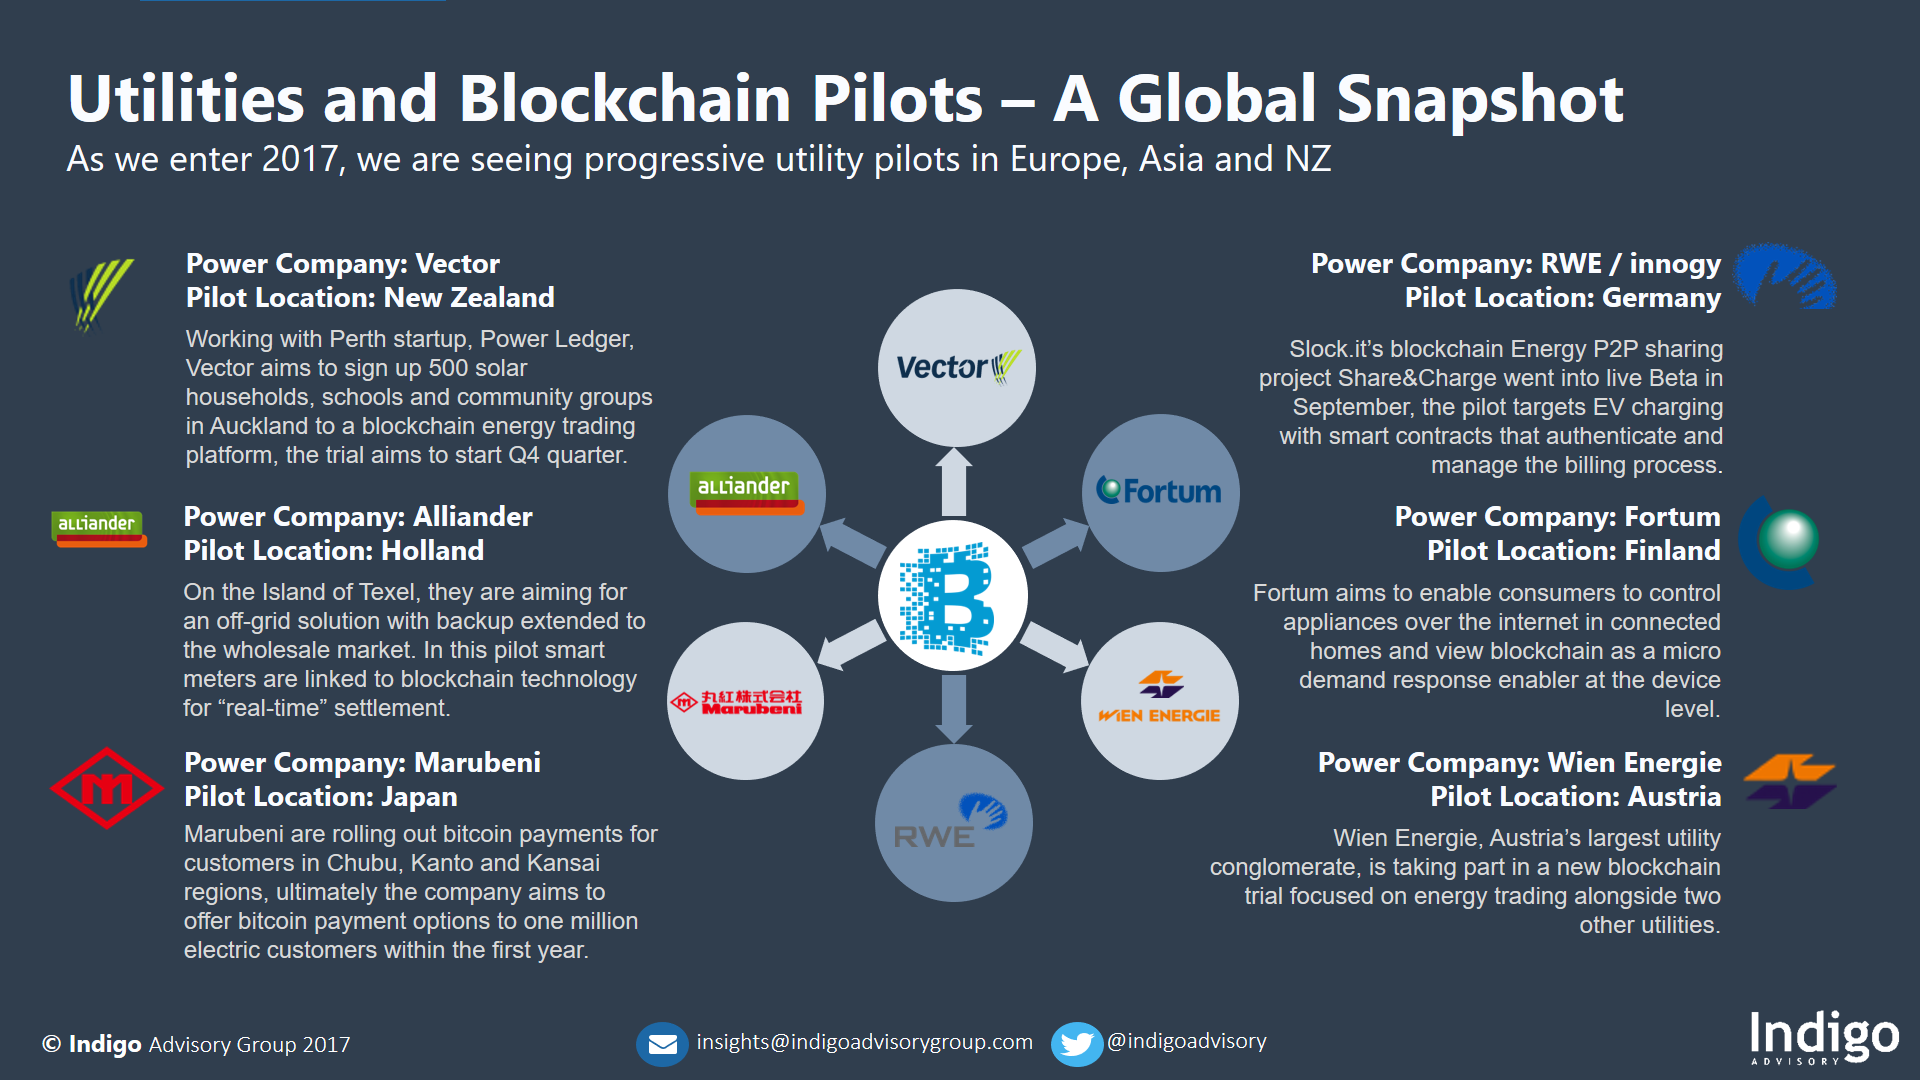 Utilities and Blockchain Pilots - Global Snapshot*